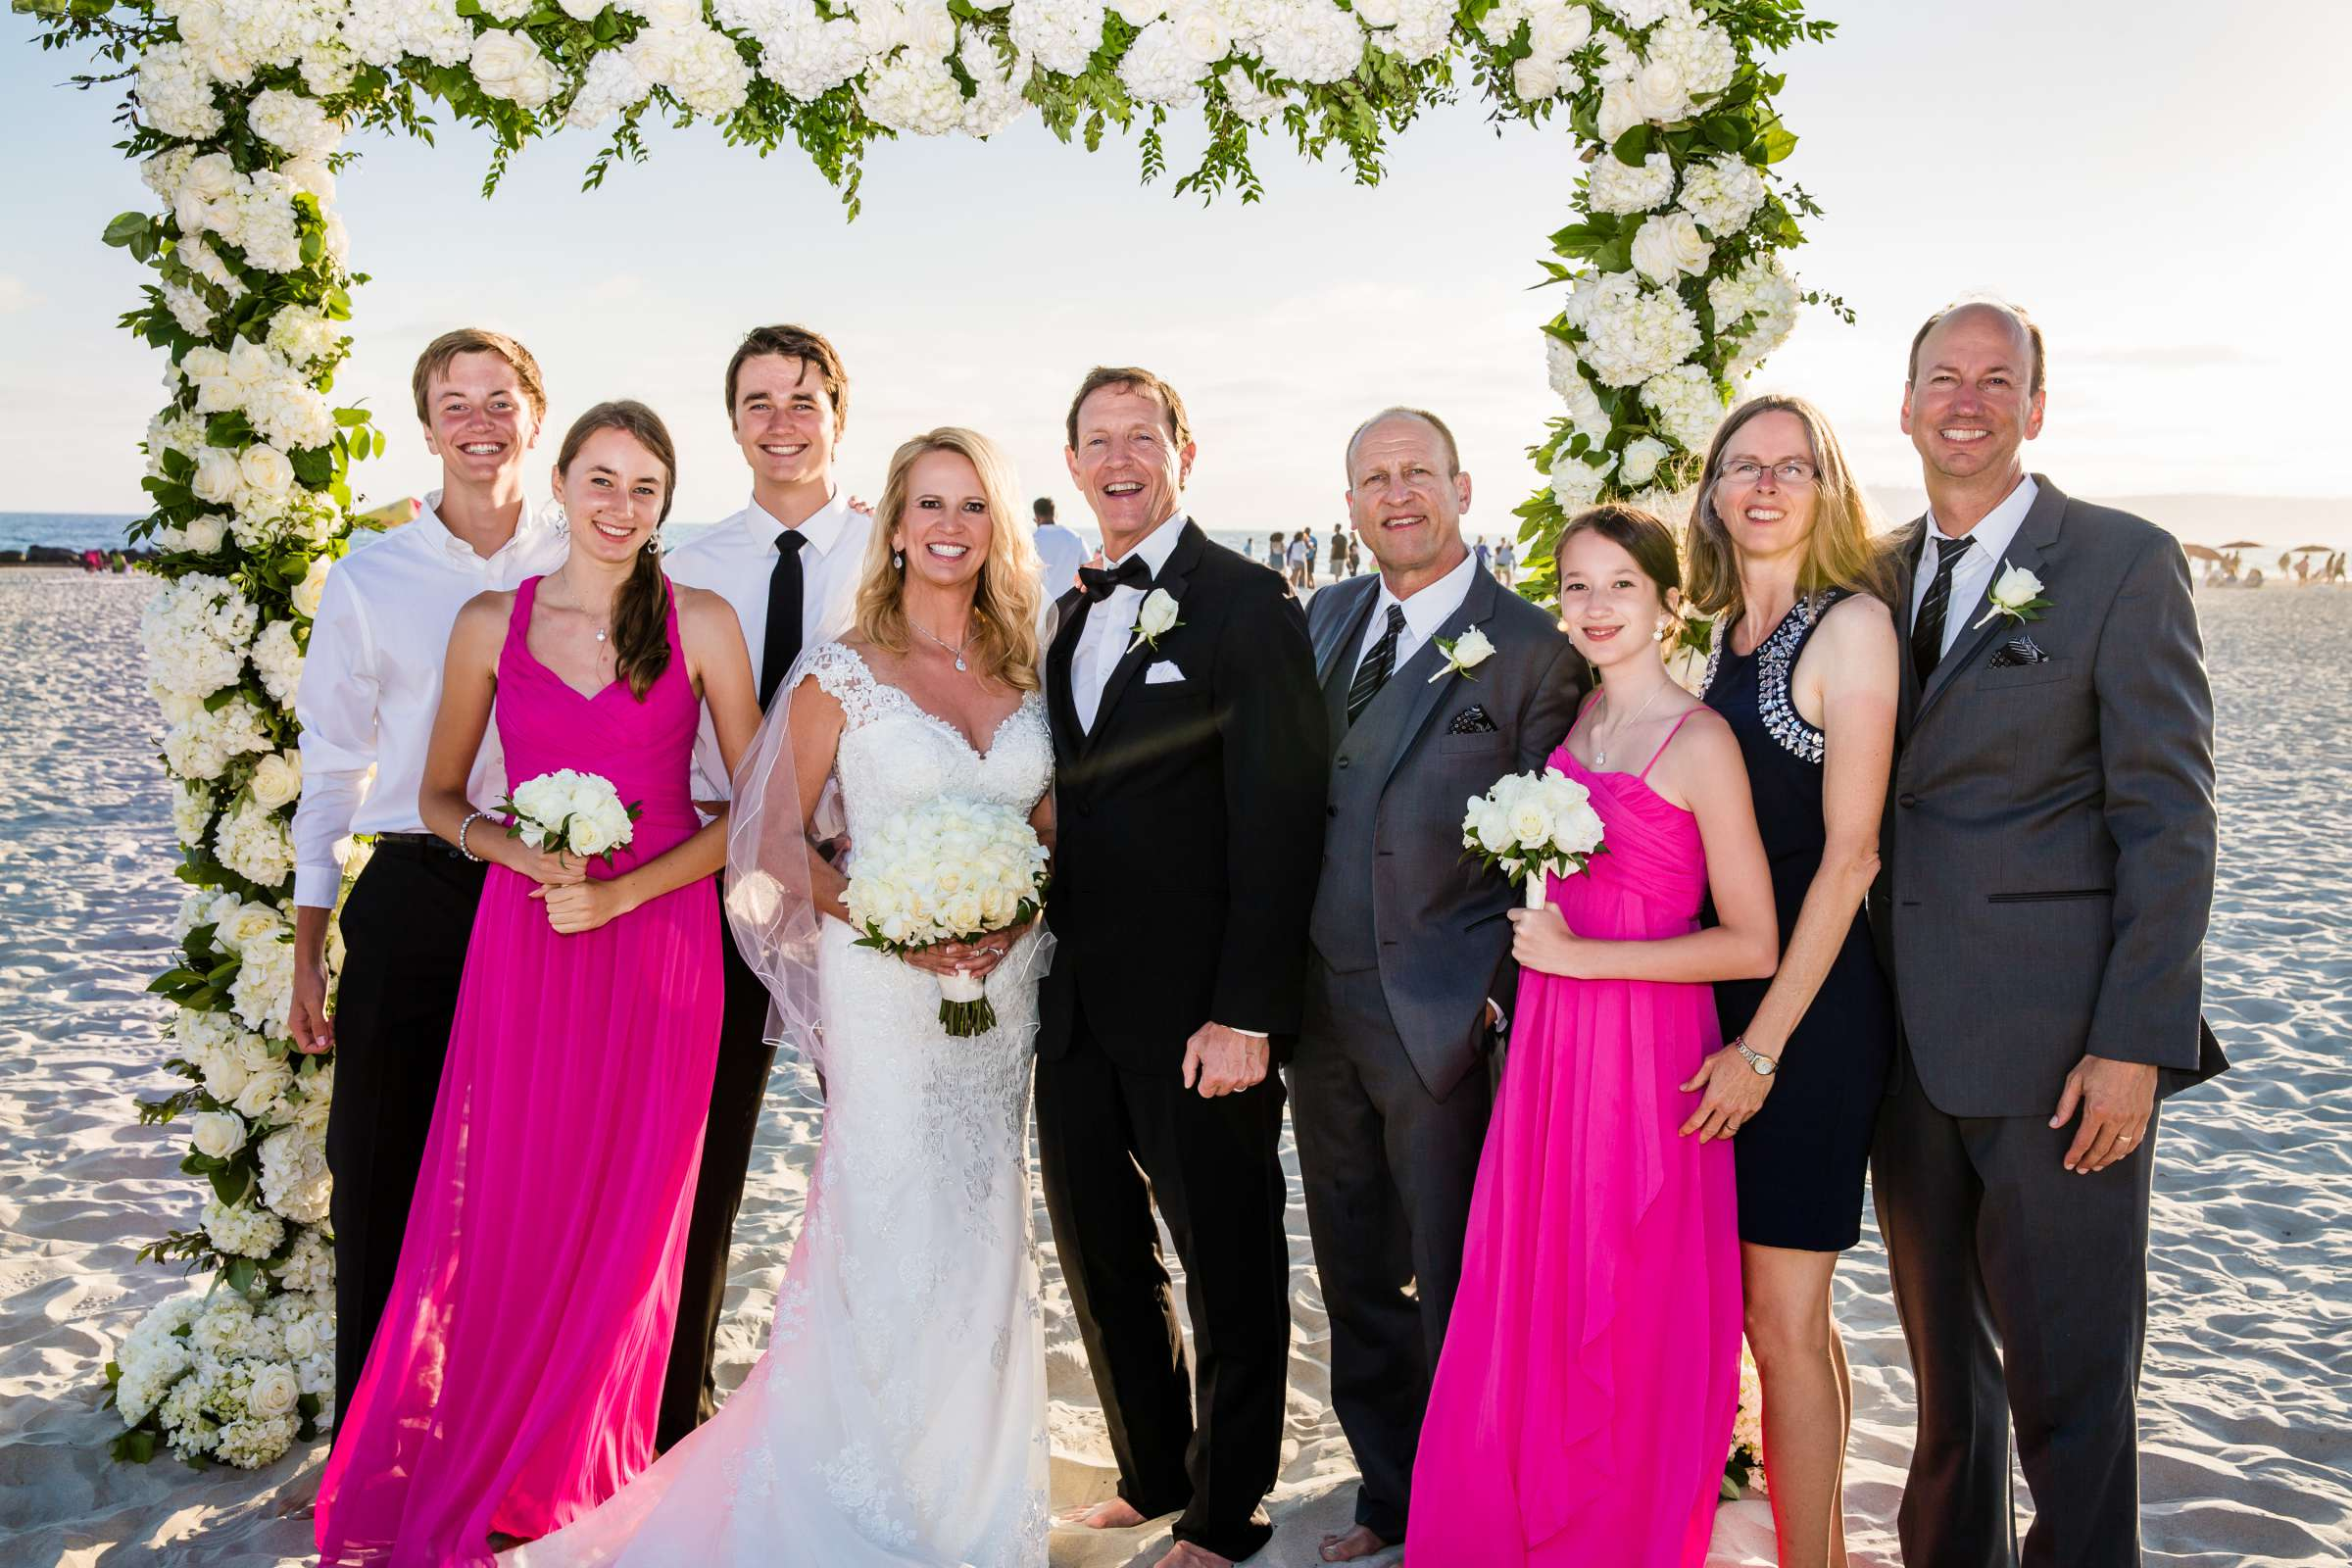 Hotel Del Coronado Wedding coordinated by Creative Affairs Inc, Diane and Paul Wedding Photo #72 by True Photography